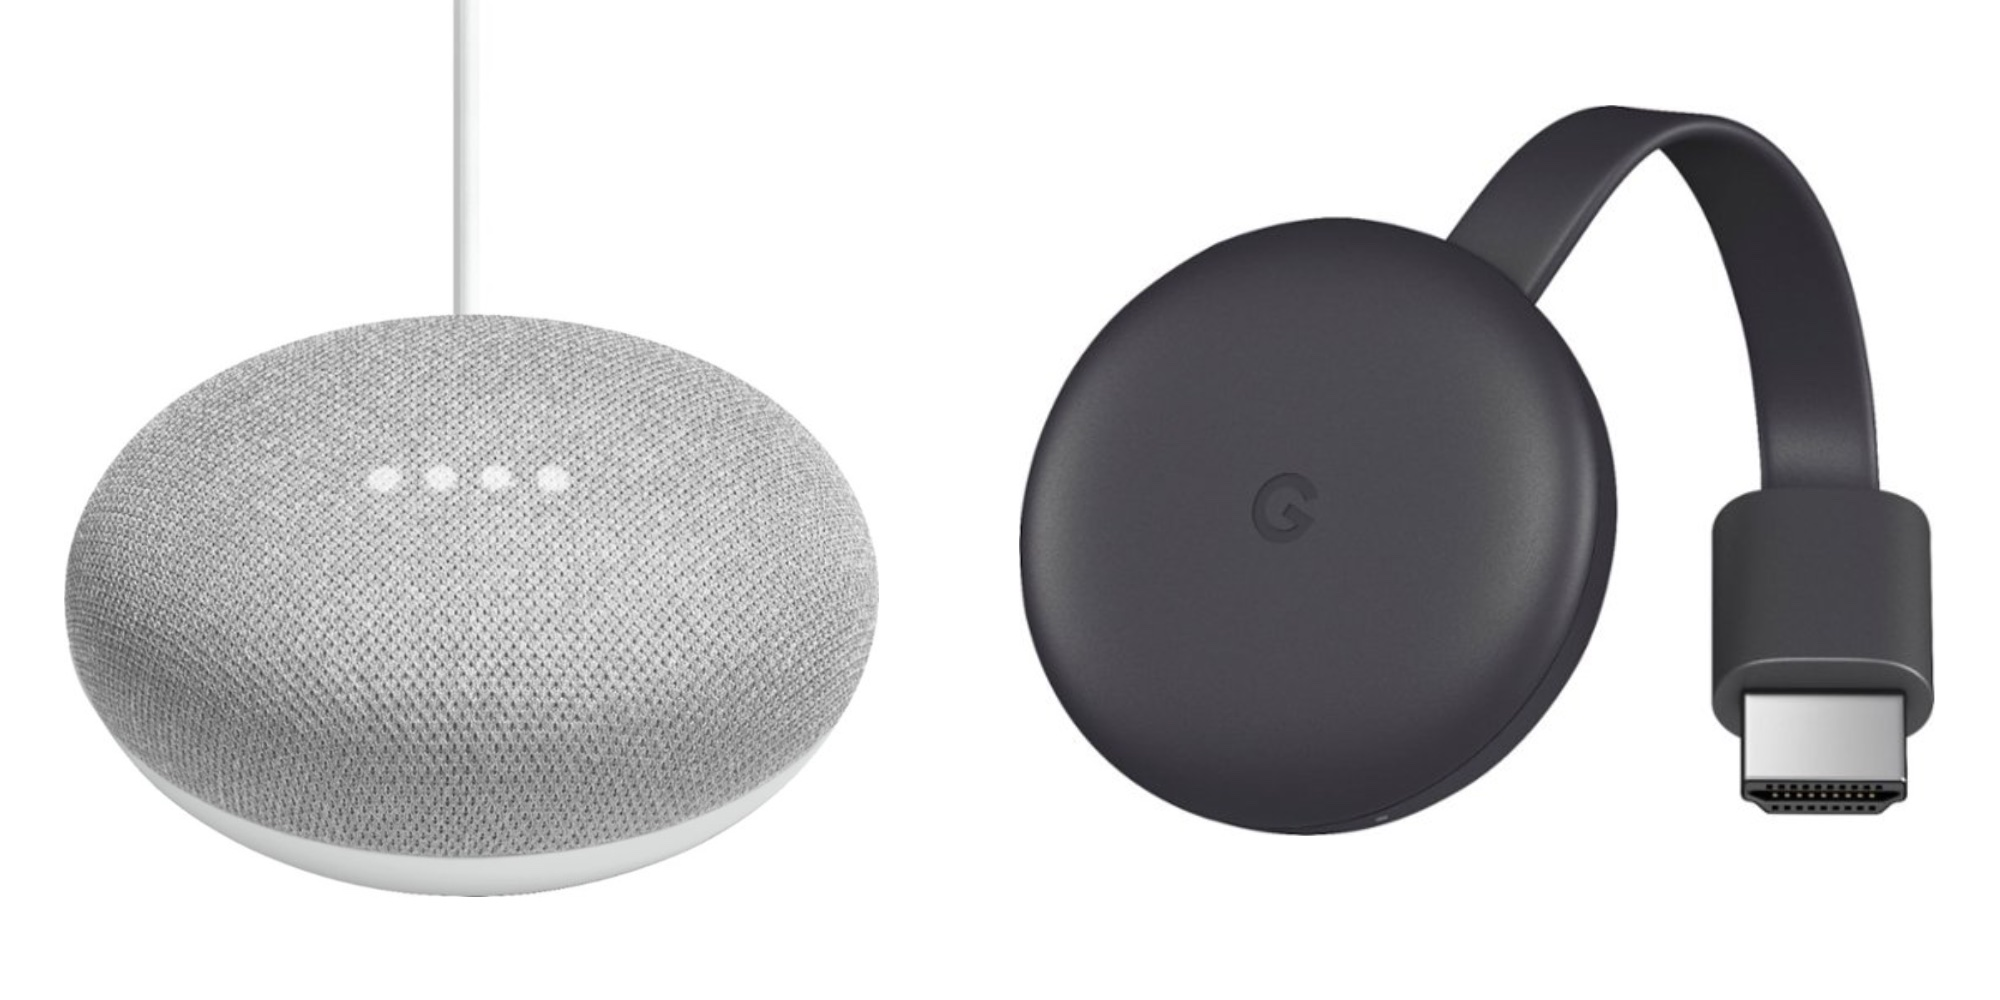 Bundle a Google Home Mini with the latest-gen. Chromecast for $60 shipped ($84 value)